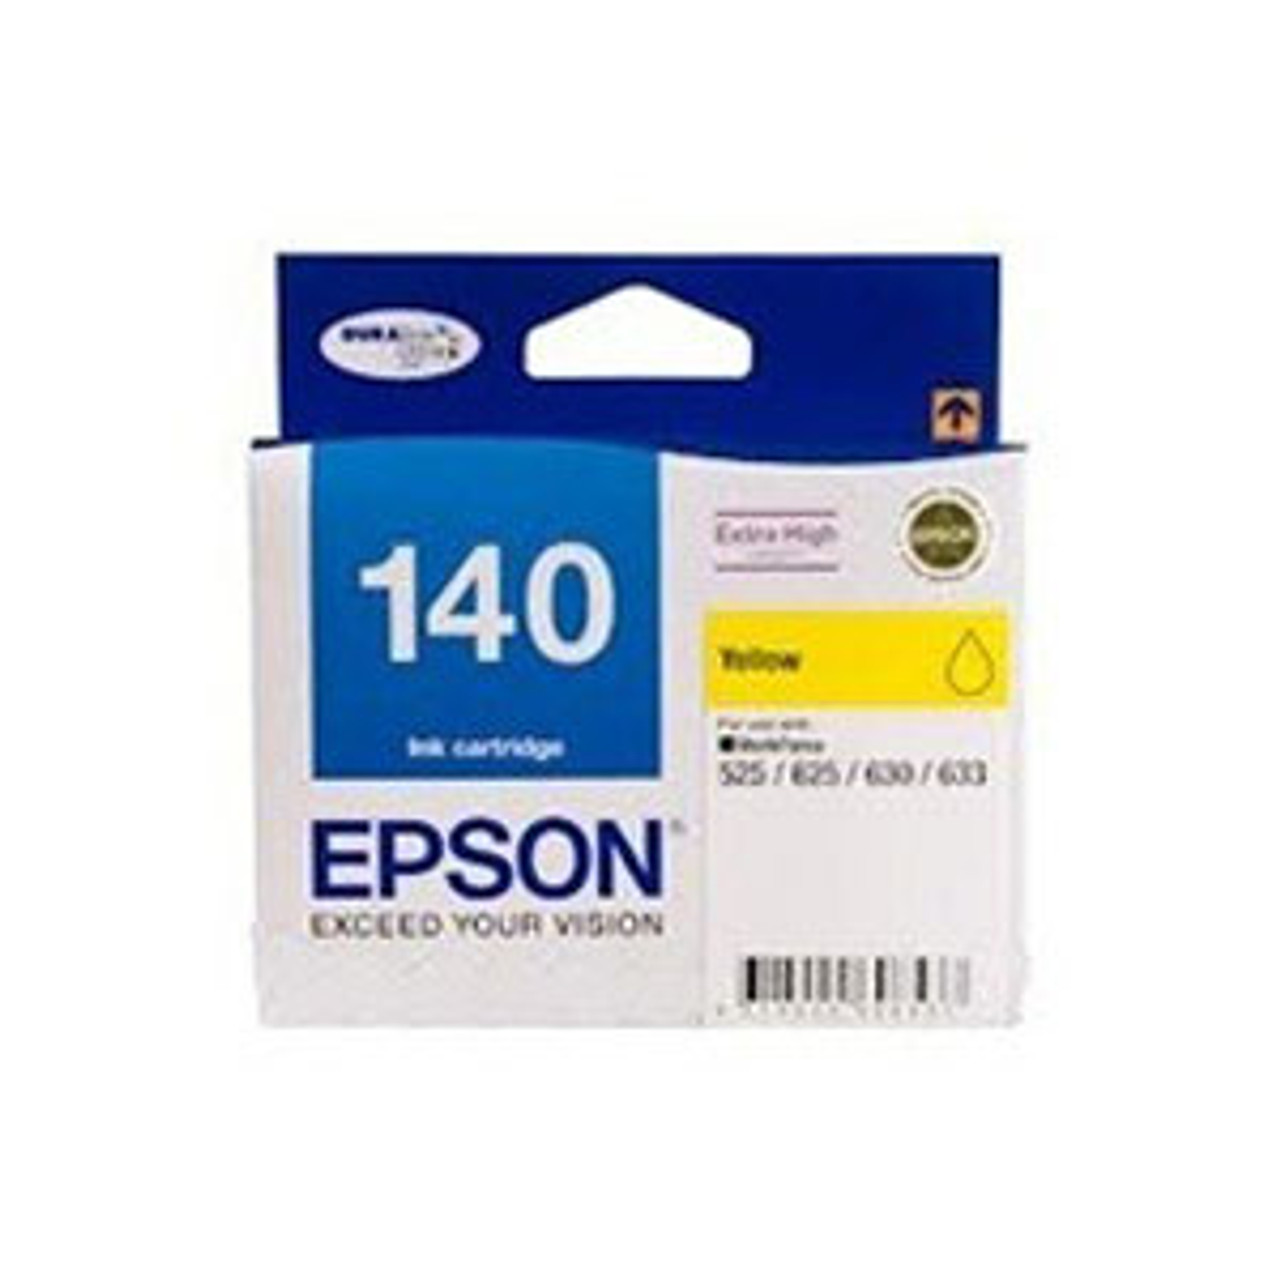 Image for Epson 140 Yellow Ink Cartridge CX Computer Superstore